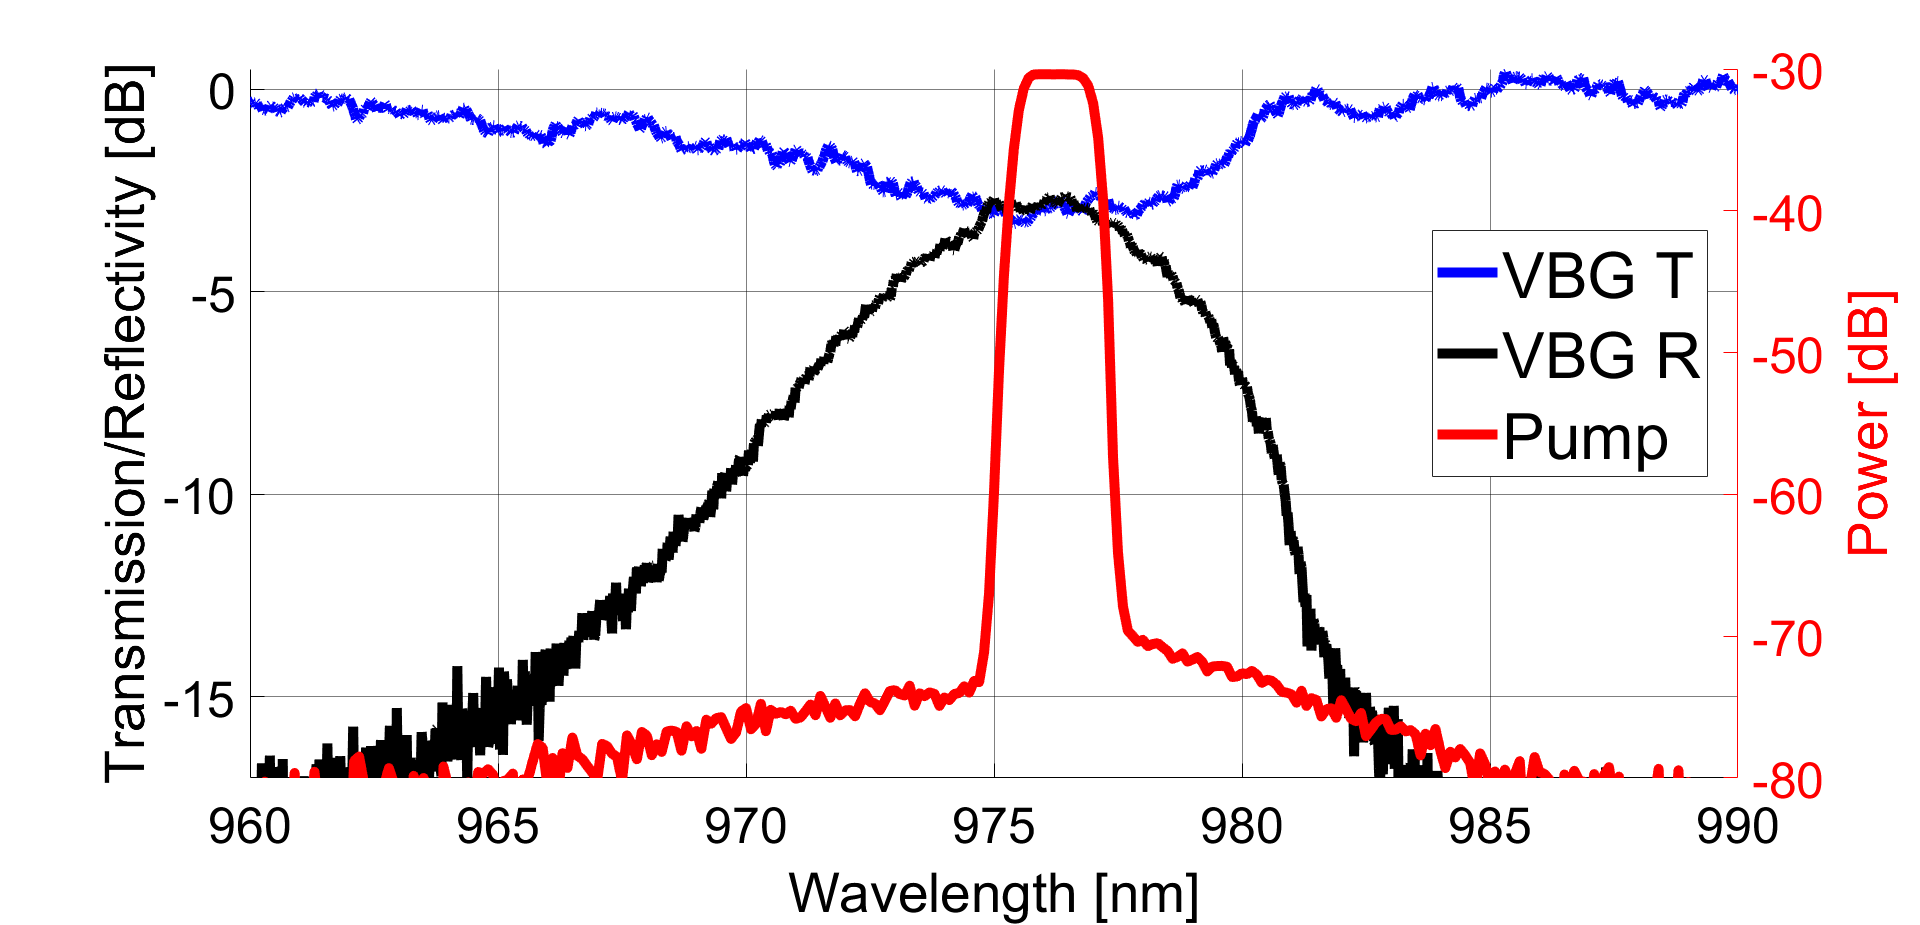 Pump diode spectrum at high power along with the transmission and reflectivity spectra of the VBG written in the Er-doped final fiber laser cavity.